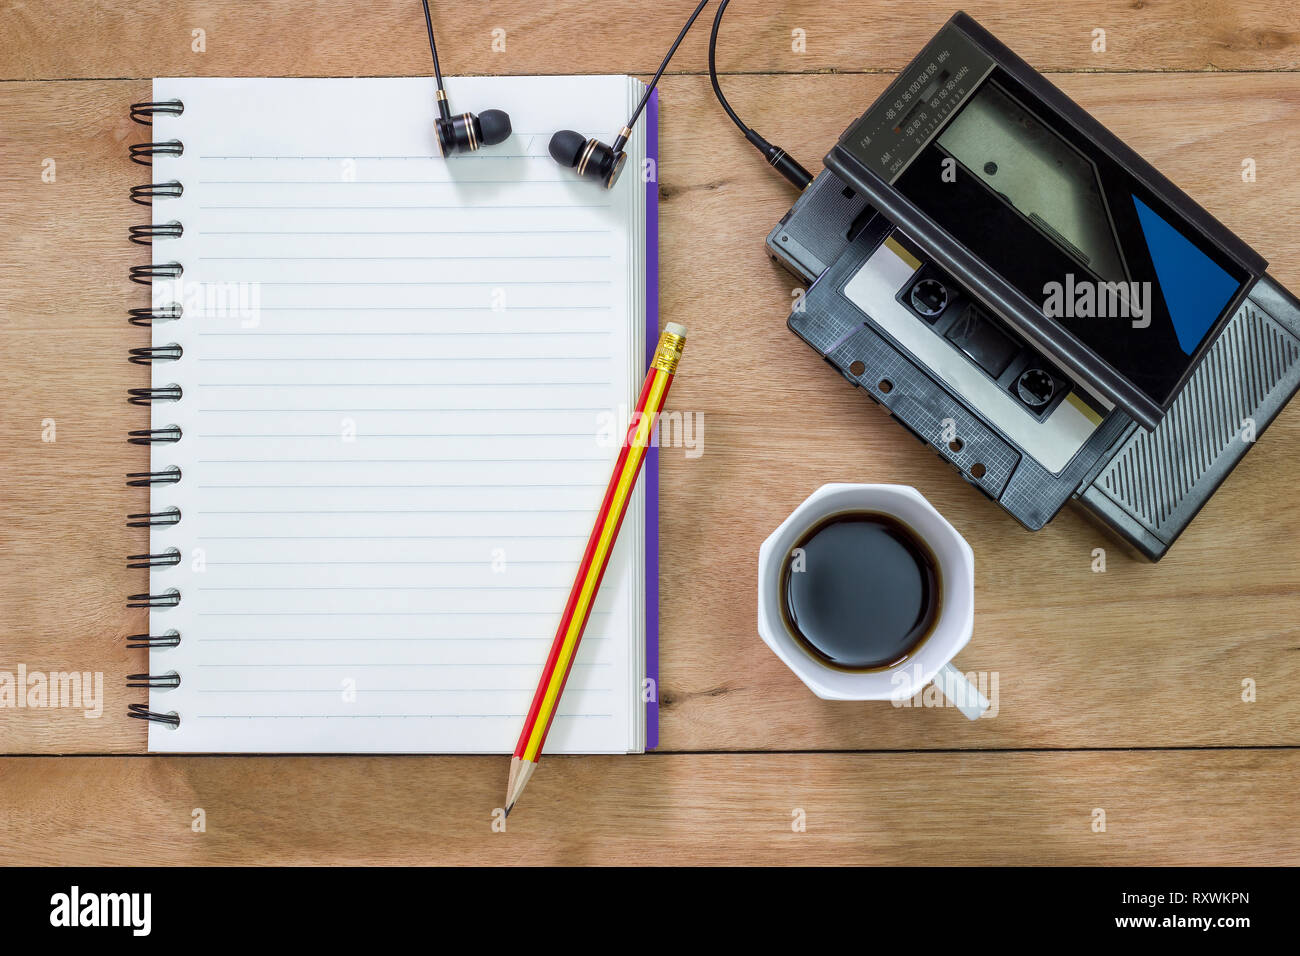 Bank notebook with pencil laying on the brown table. Vintage old tape player with earphones and black coffee put on the table as well. - Stock Image